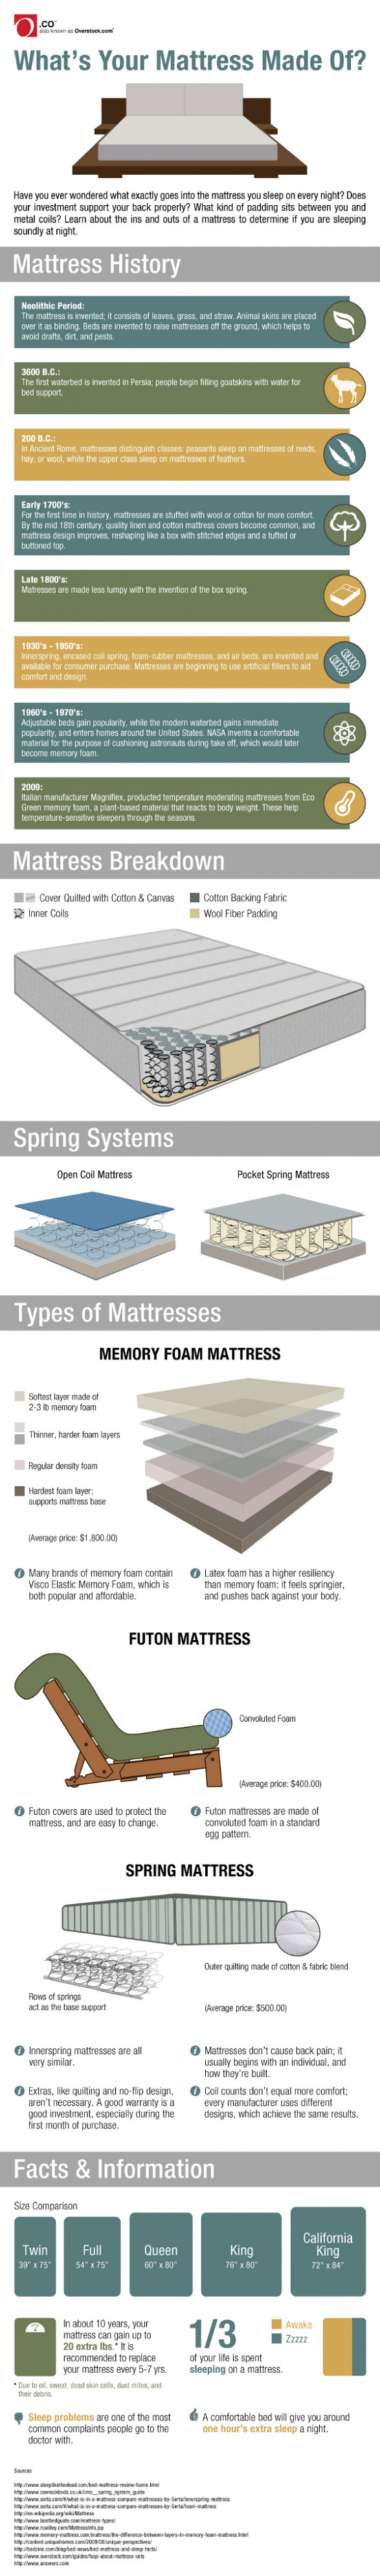 What is your mattress made of